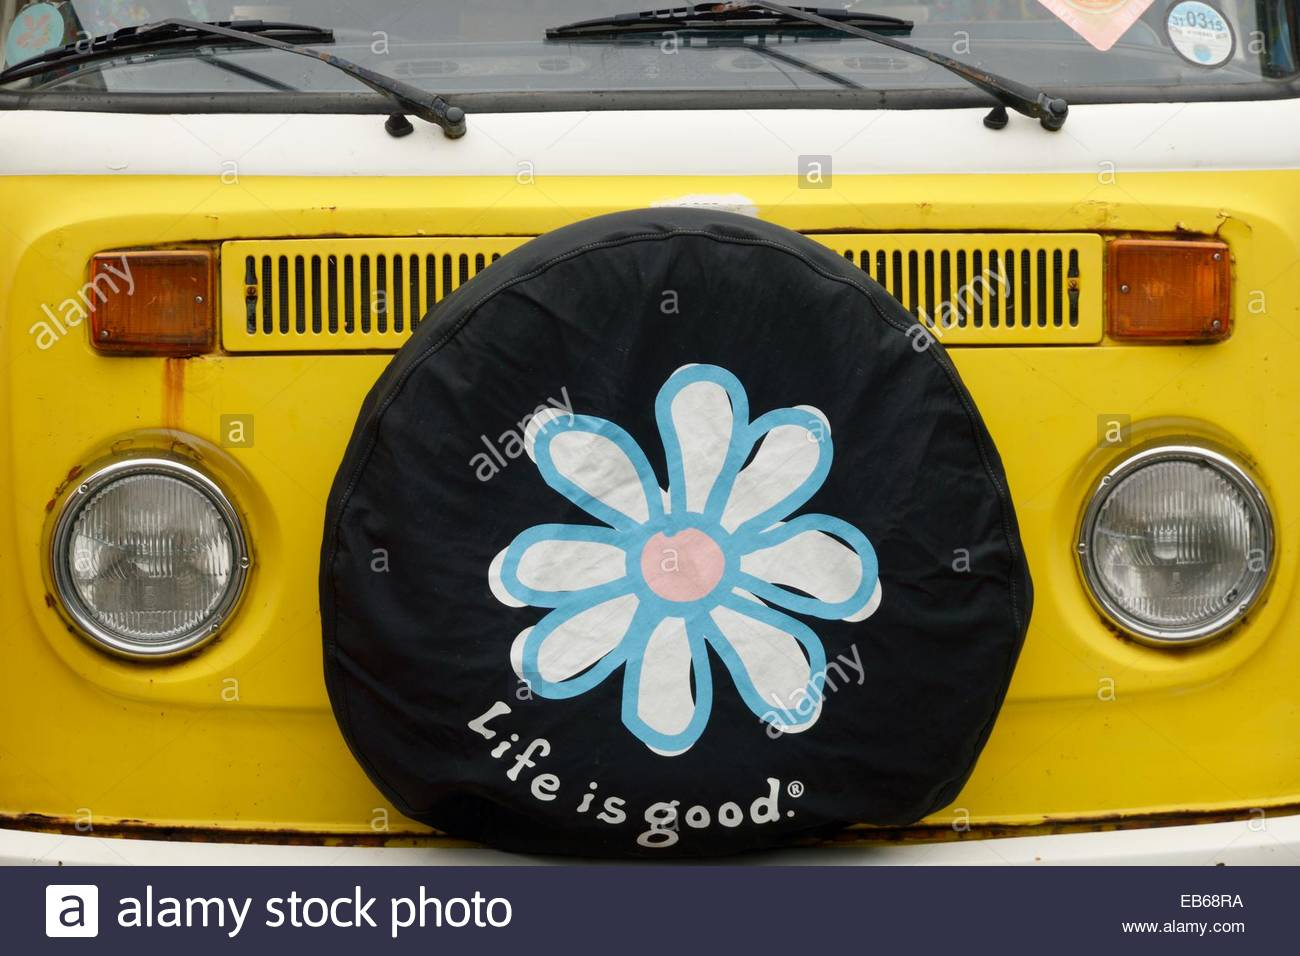 Old yellow Volkswagen (VW) camper van with a 'Life Is Good' spare wheel cover. Stock Photo